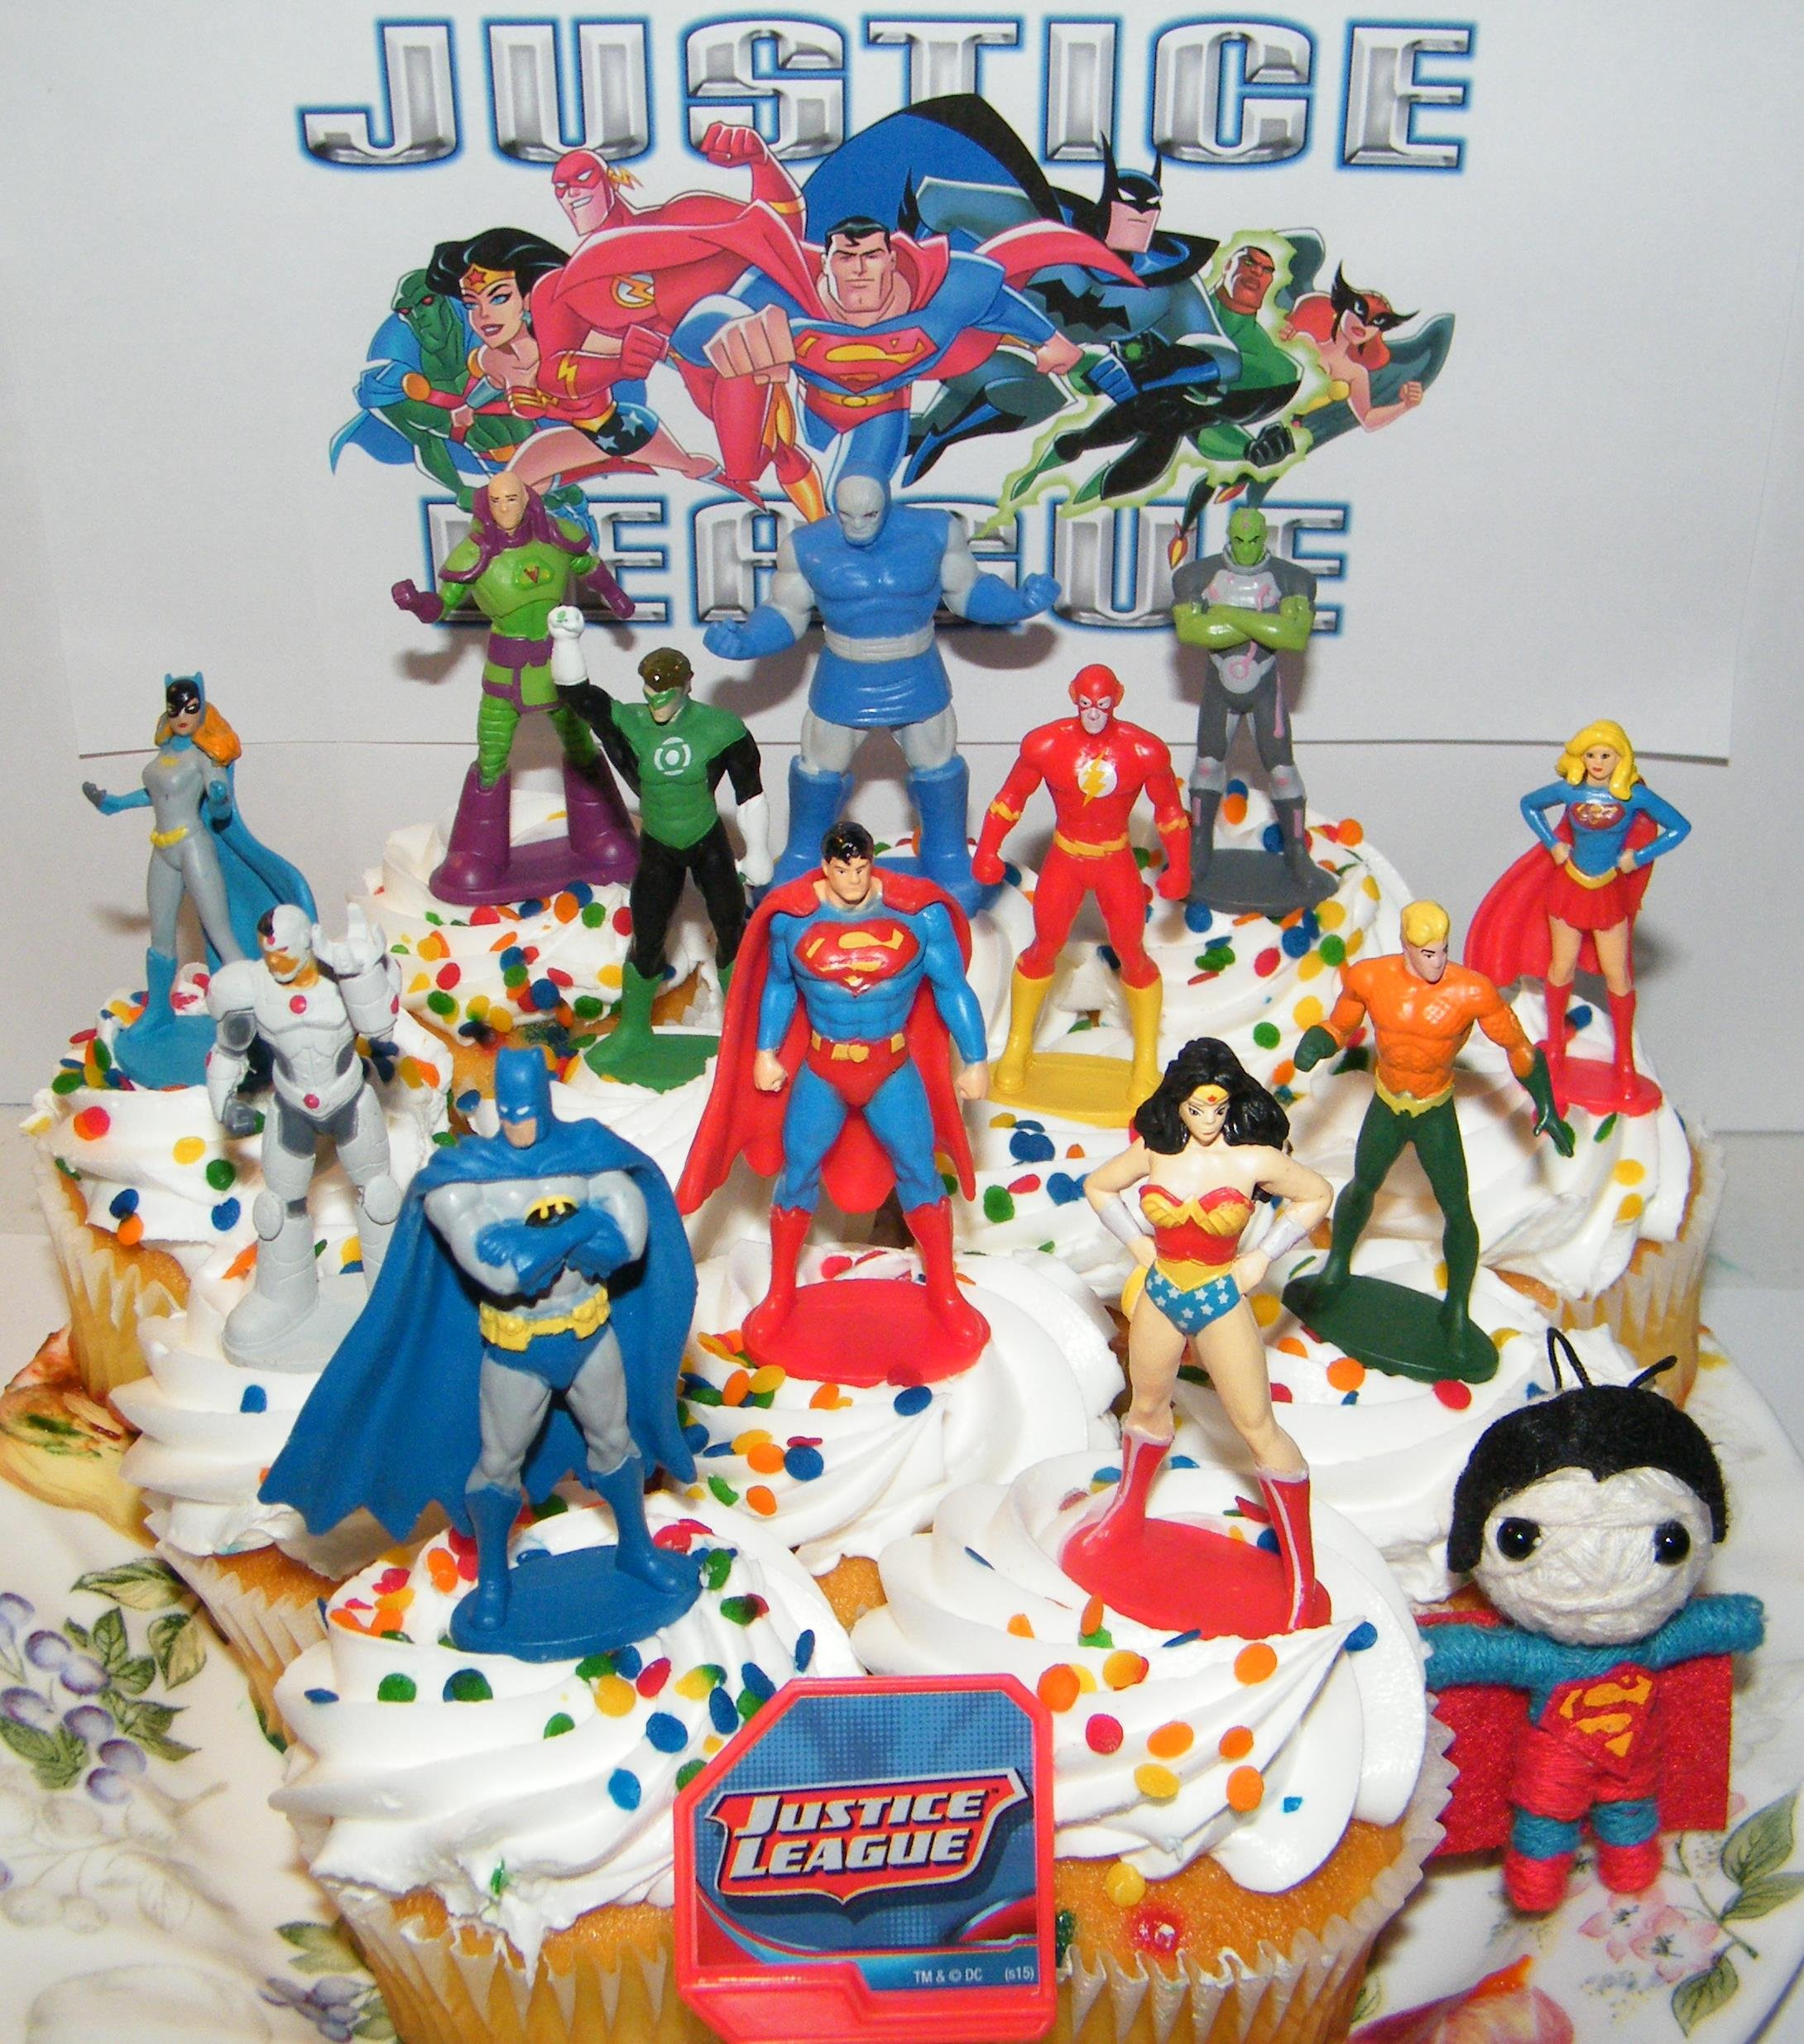 Justice League Deluxe Cake Toppers Cupcake Decorations Set of 14 with 12 Figures, DC Doll, JL ToyRing featuring Batman, Superman, Wonder Woman, Darkseid Etc. by Super Hero